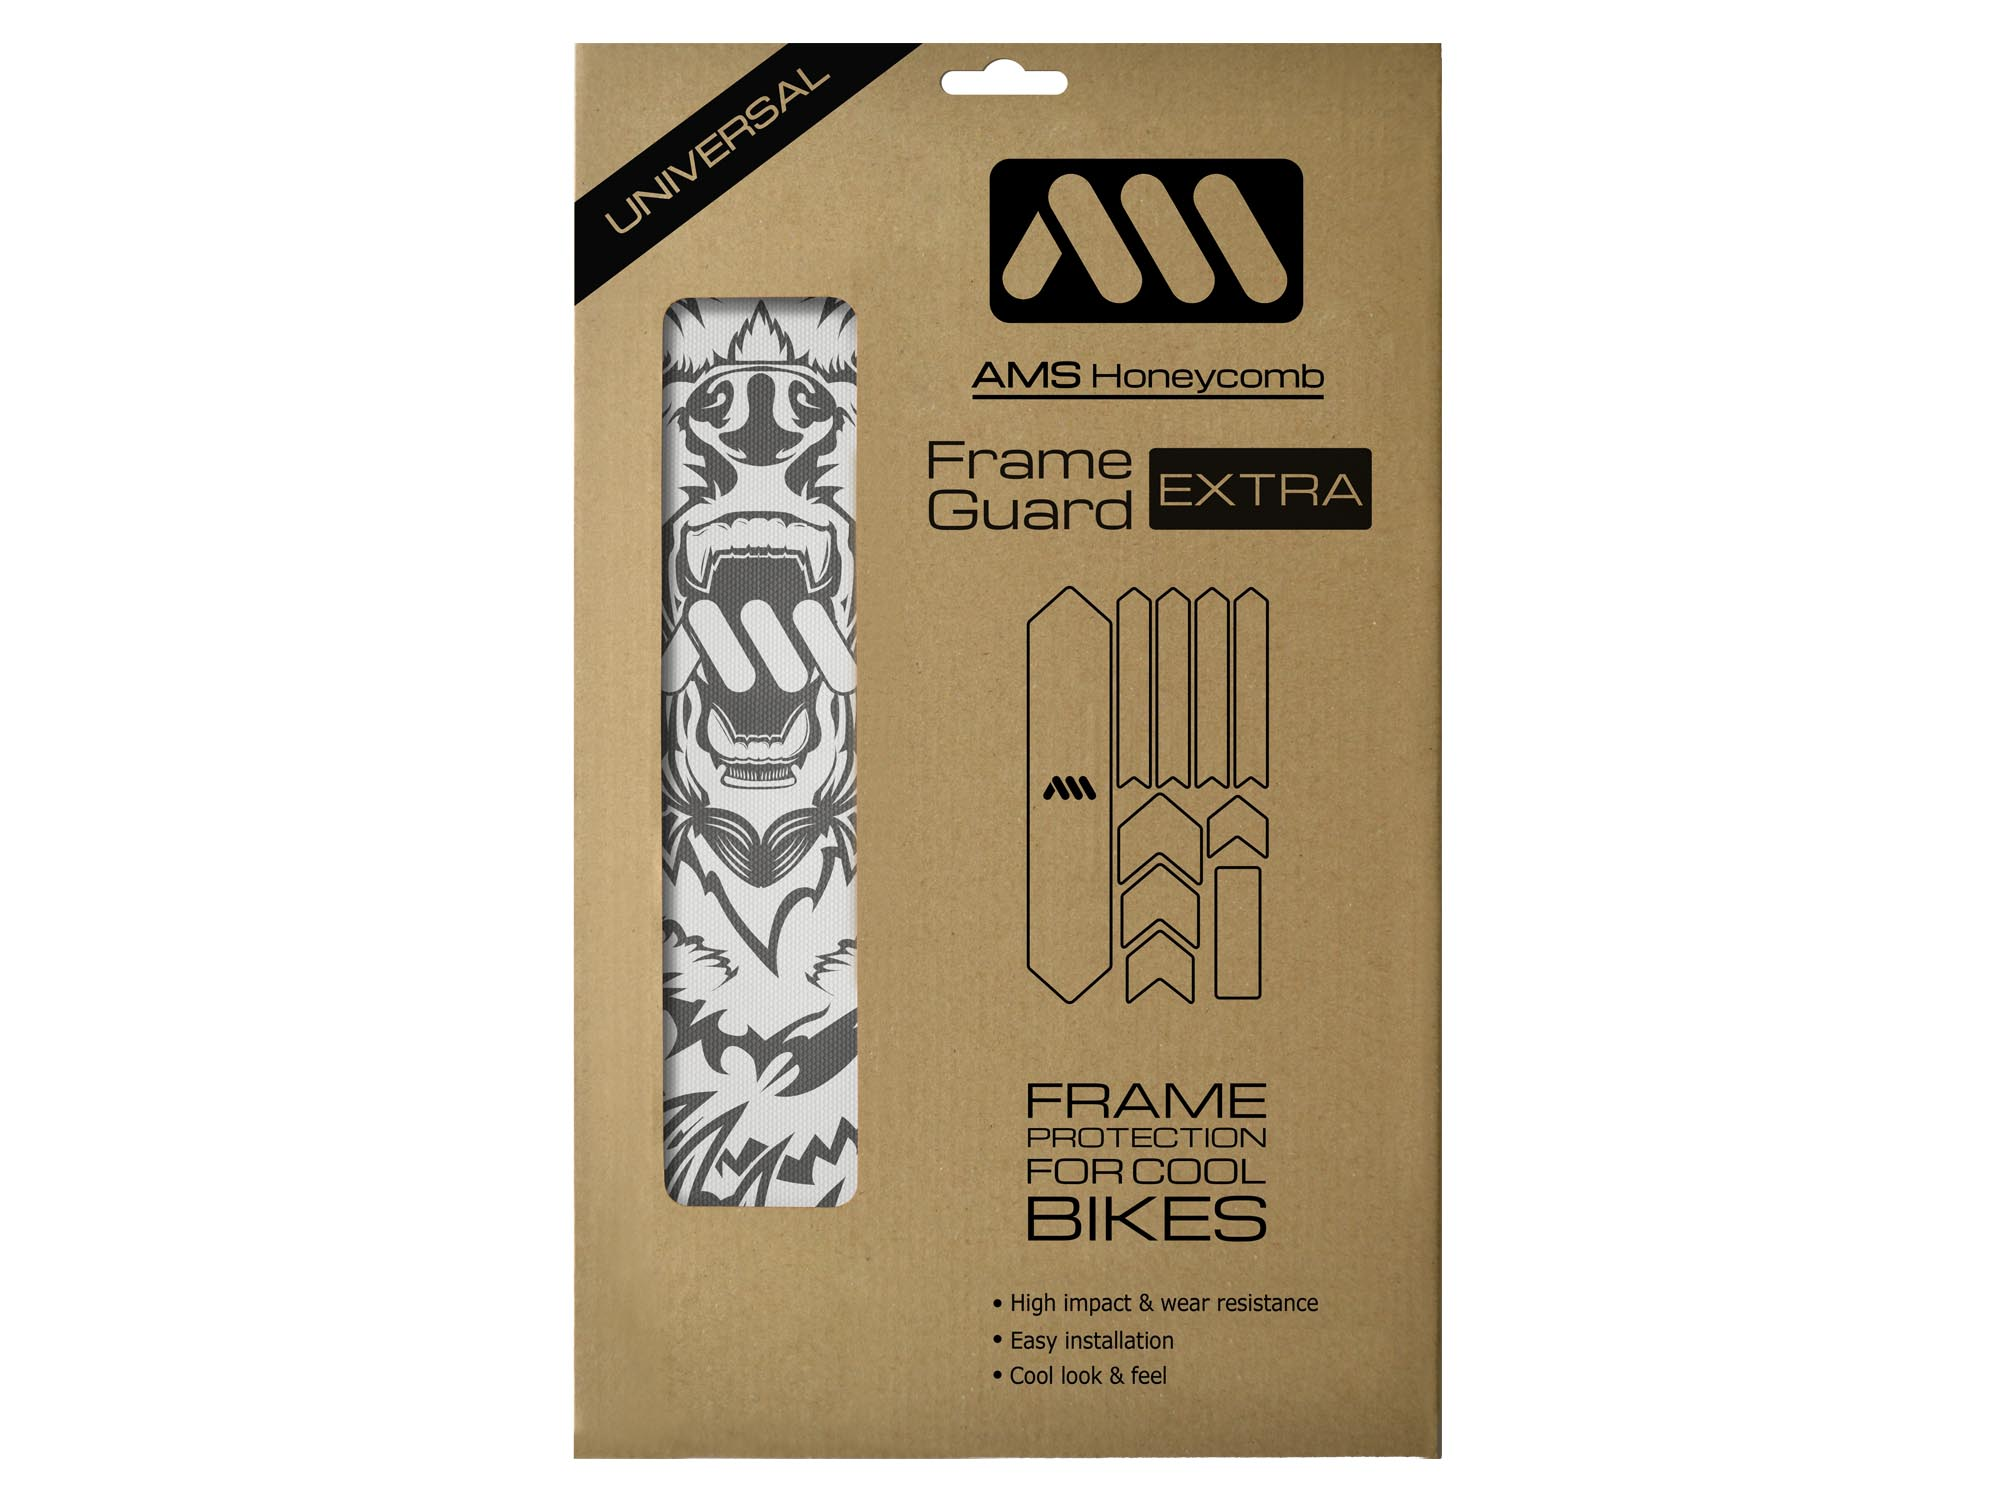 AMS Bear in Grey Frame Guard Extra size in the packaging